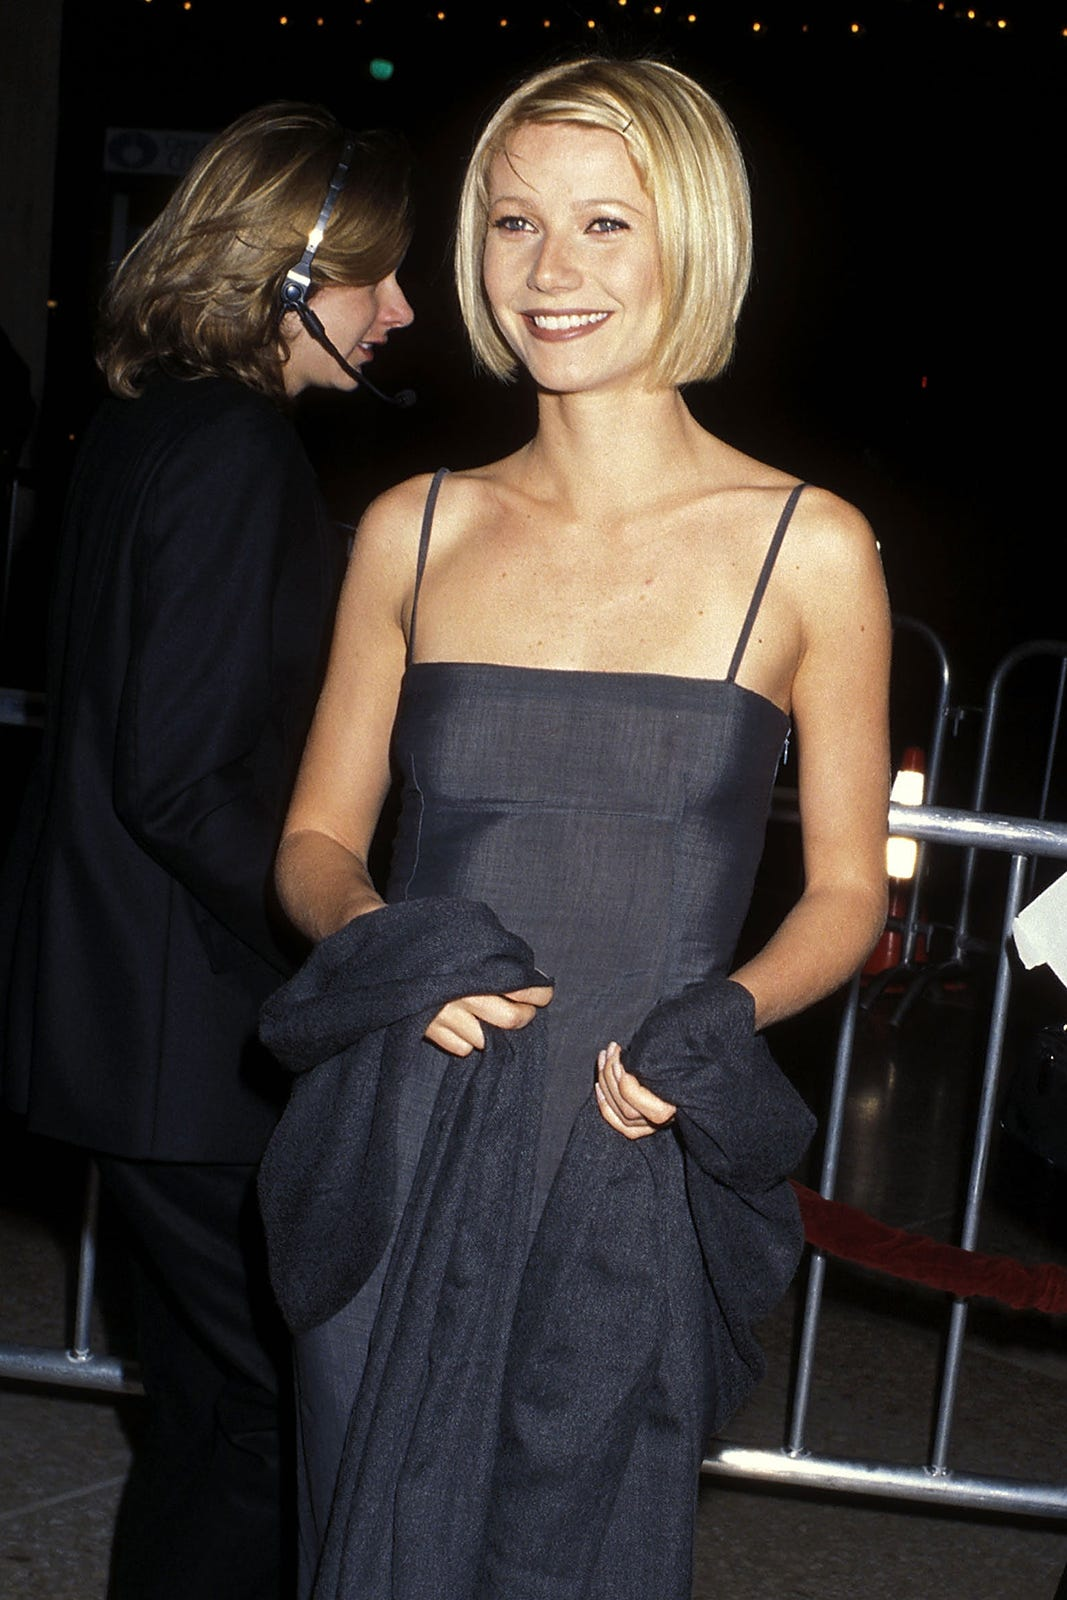 Gwyneth Paltrow Lookbook Throwback 90s Fashion Photos